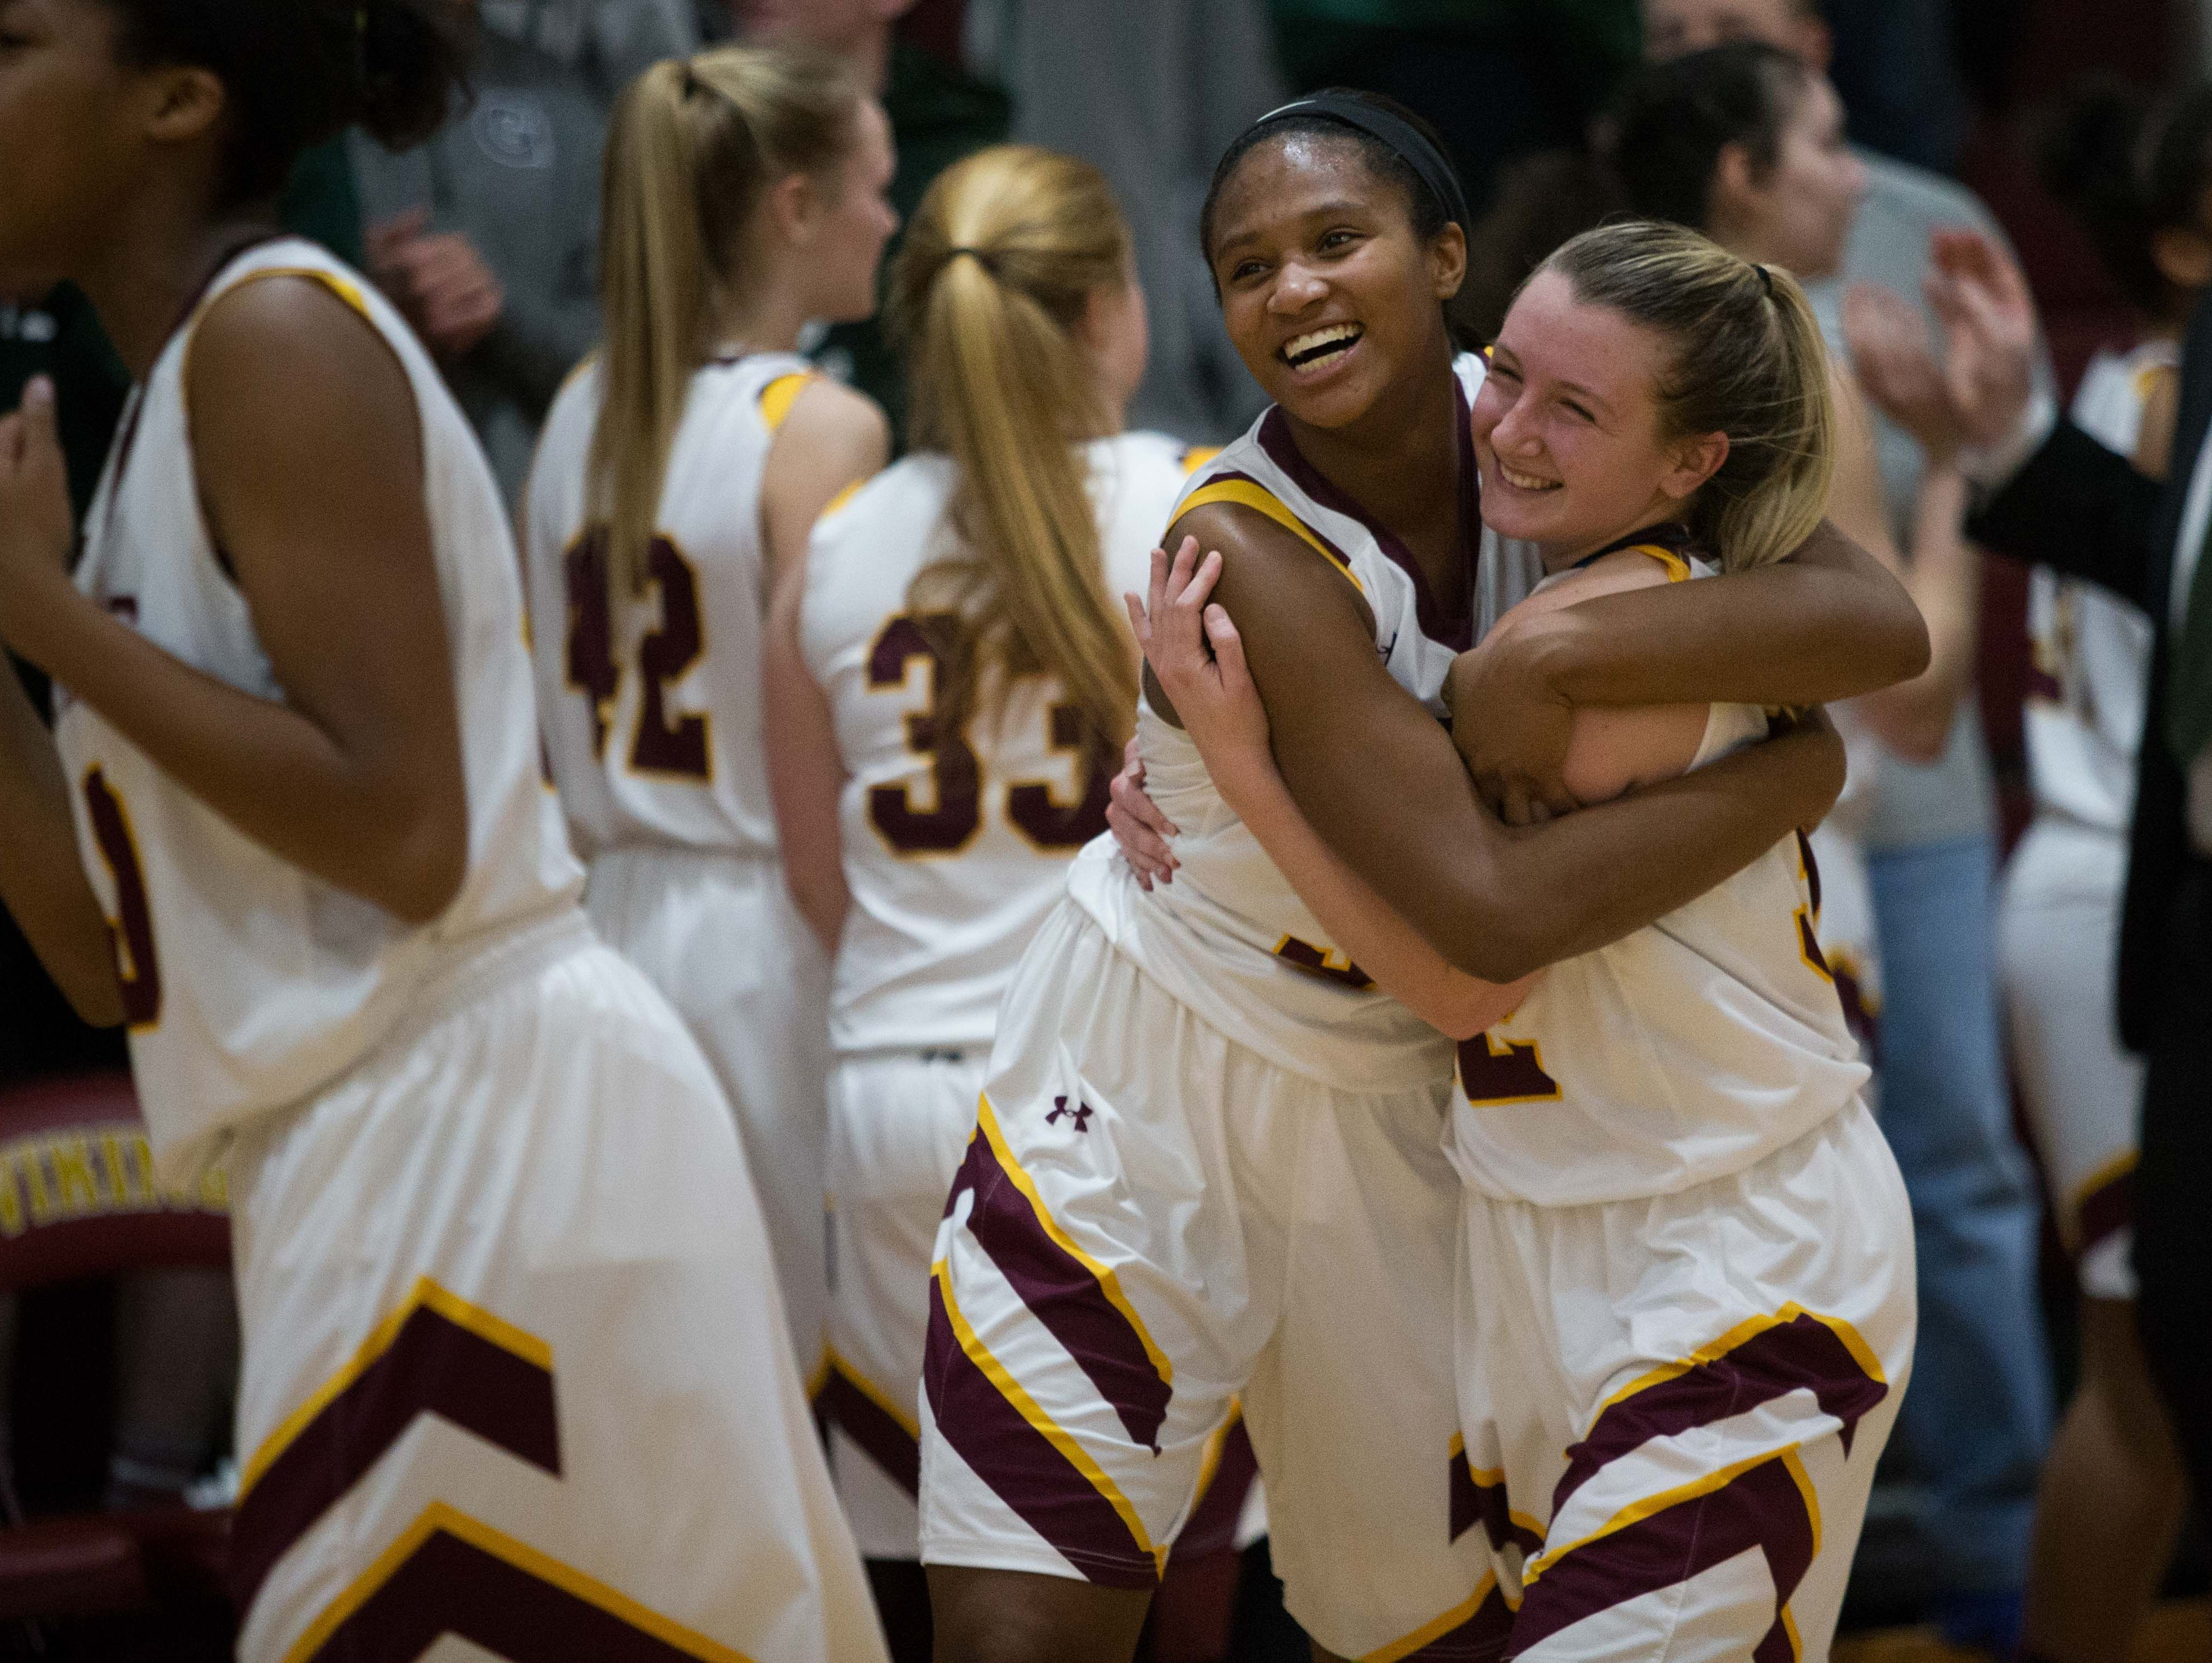 Alanna Speaks, left, and Alexis Bromwell celebrate after their second round playoff win. St. Elizabeth defeats Archmere 49-42 in the second round of the DIAA state girls basketball tournament at St. Elizabeth Thursday.